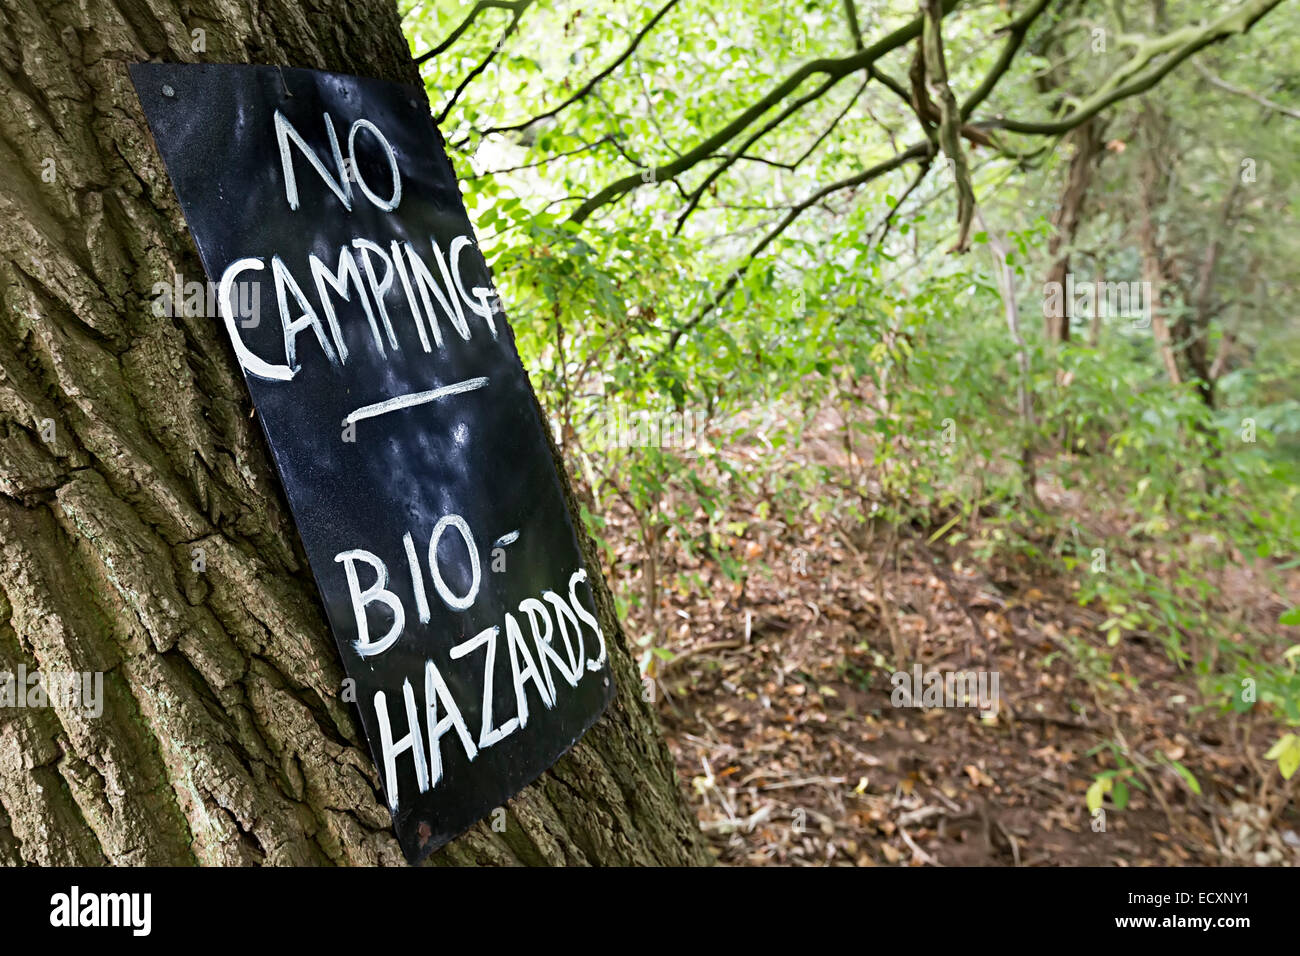 No camping bio hazards warning sign on tree in woods, Usk Valley, Wales, UK - Stock Image